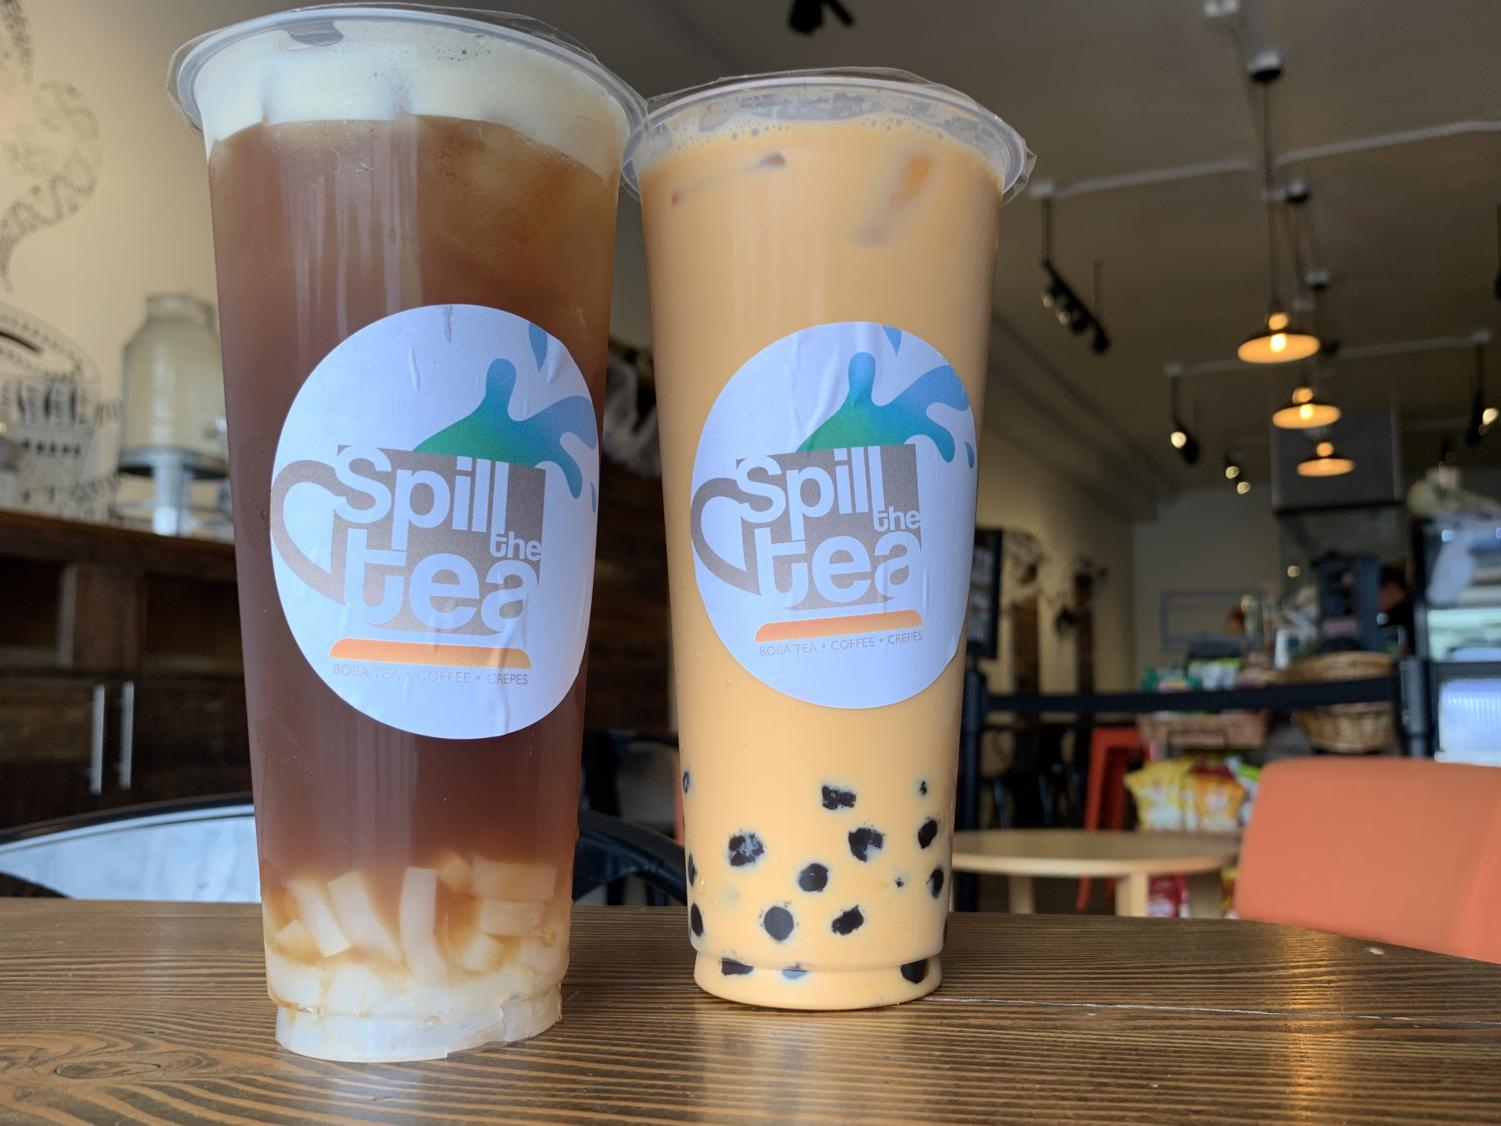 The lychee mania and the Thai tea are both phenomenal drinks.